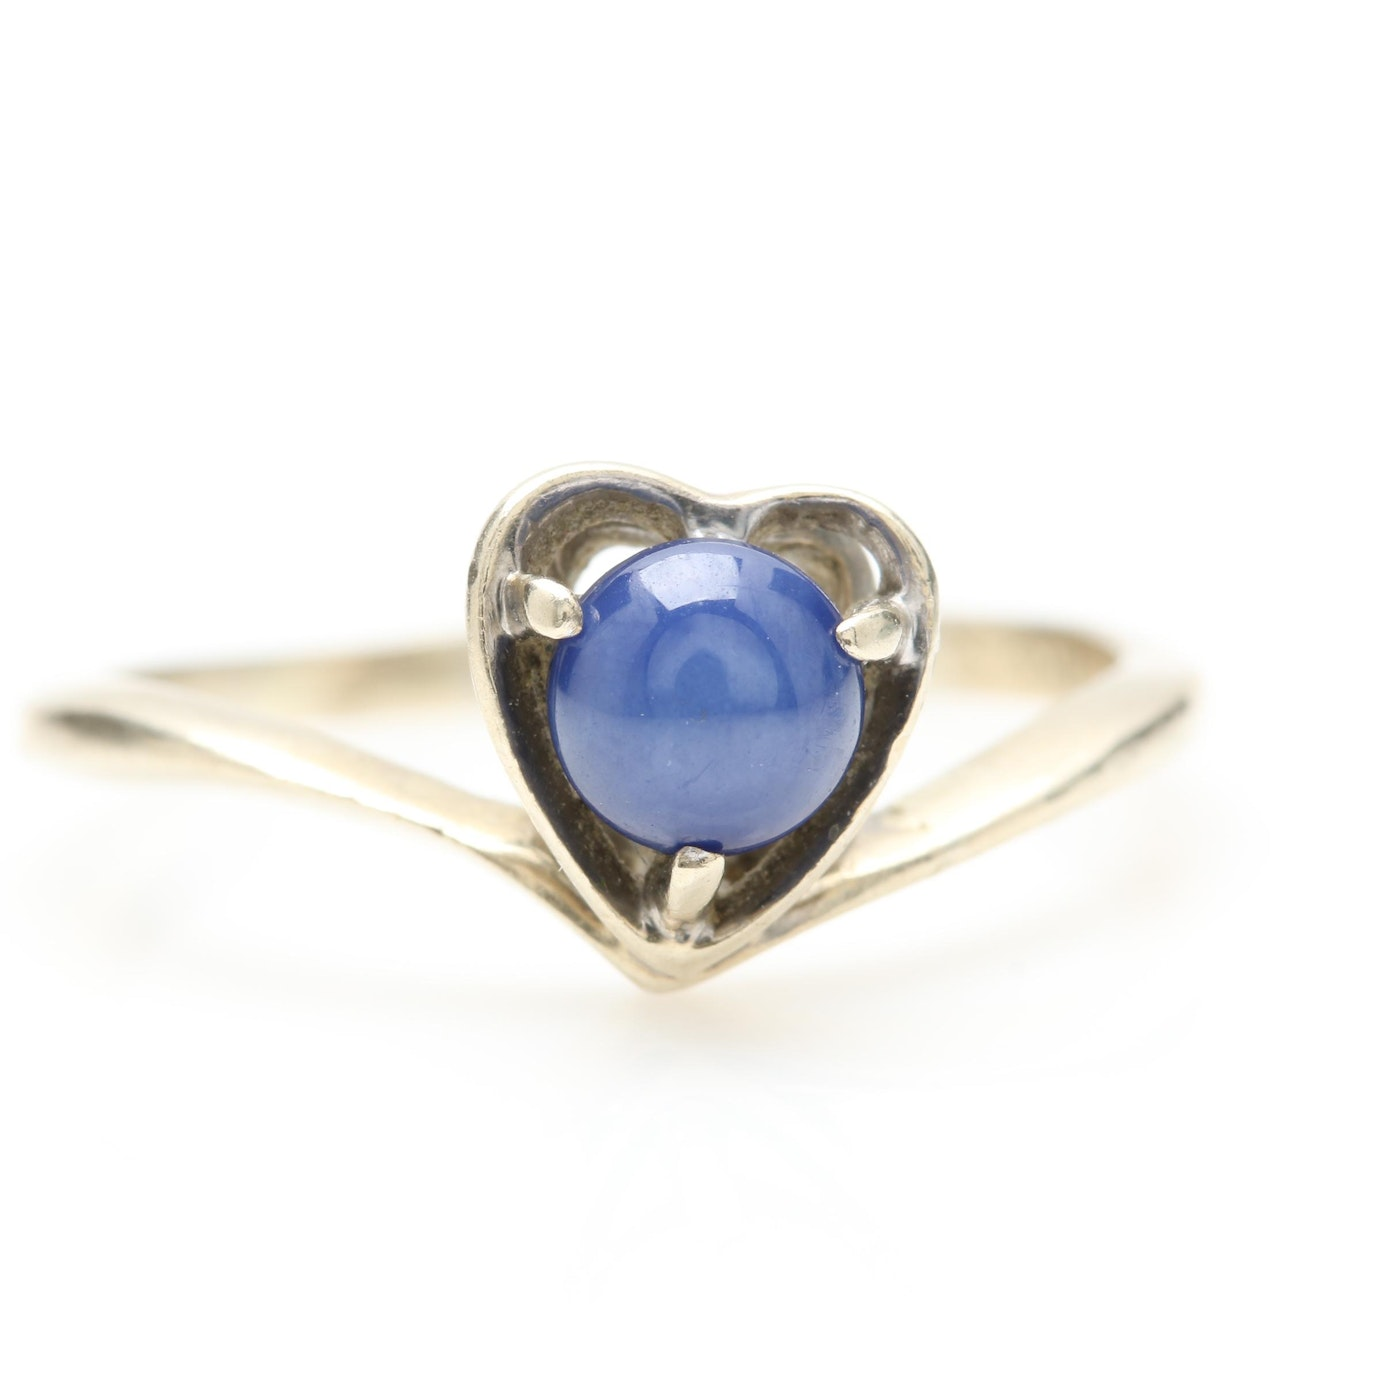 10K White Gold Synthetic Star Sapphire Ring | EBTH